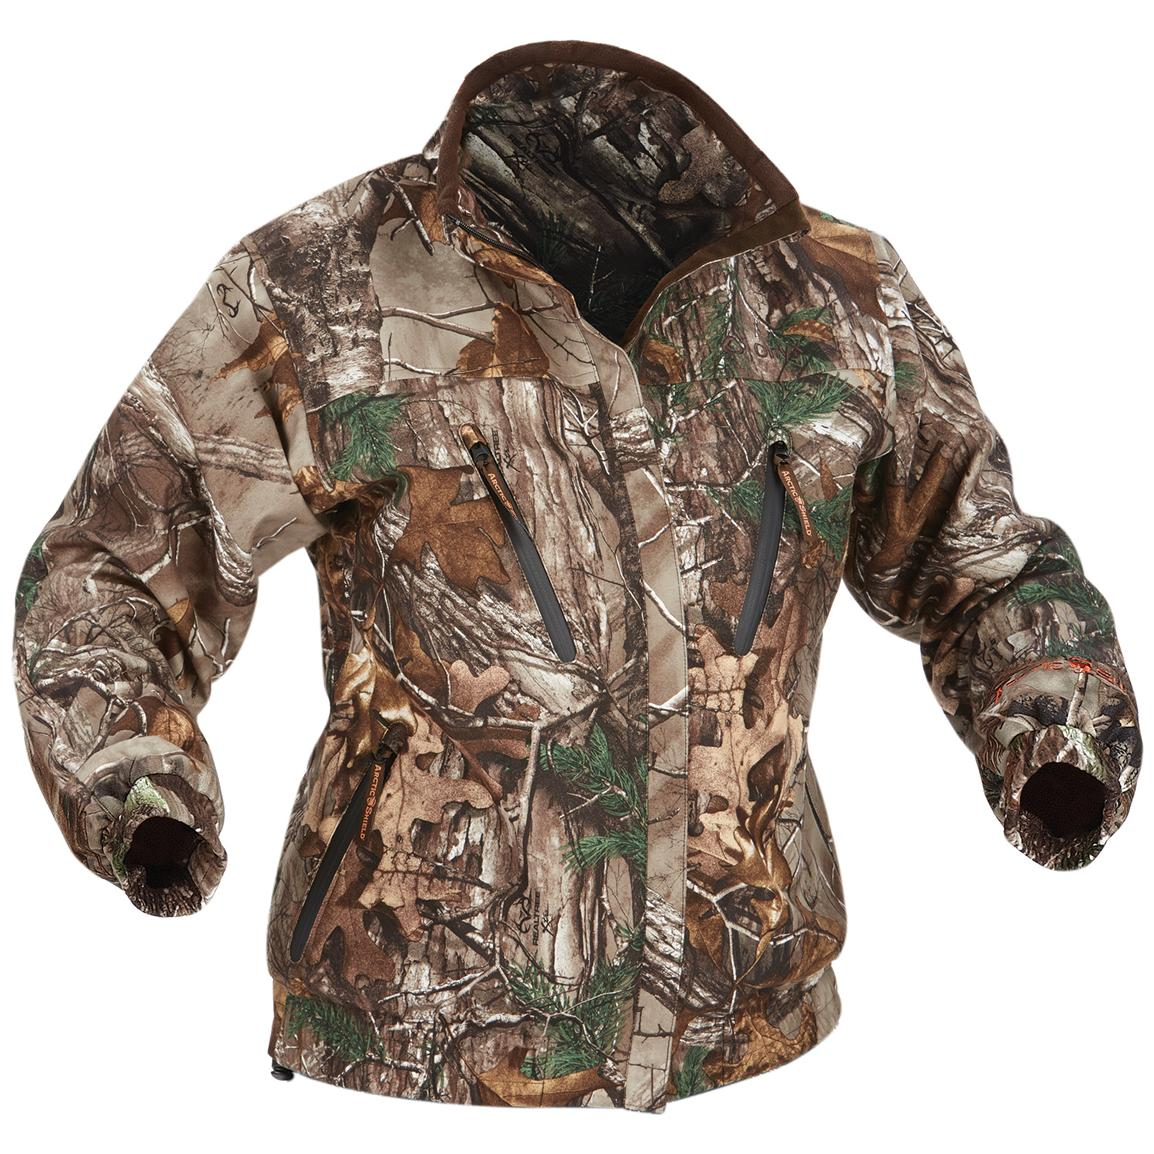 Women's Onyx ArcticShield® Light Waterproof Hunting Jacket, Realtree® Xtra™